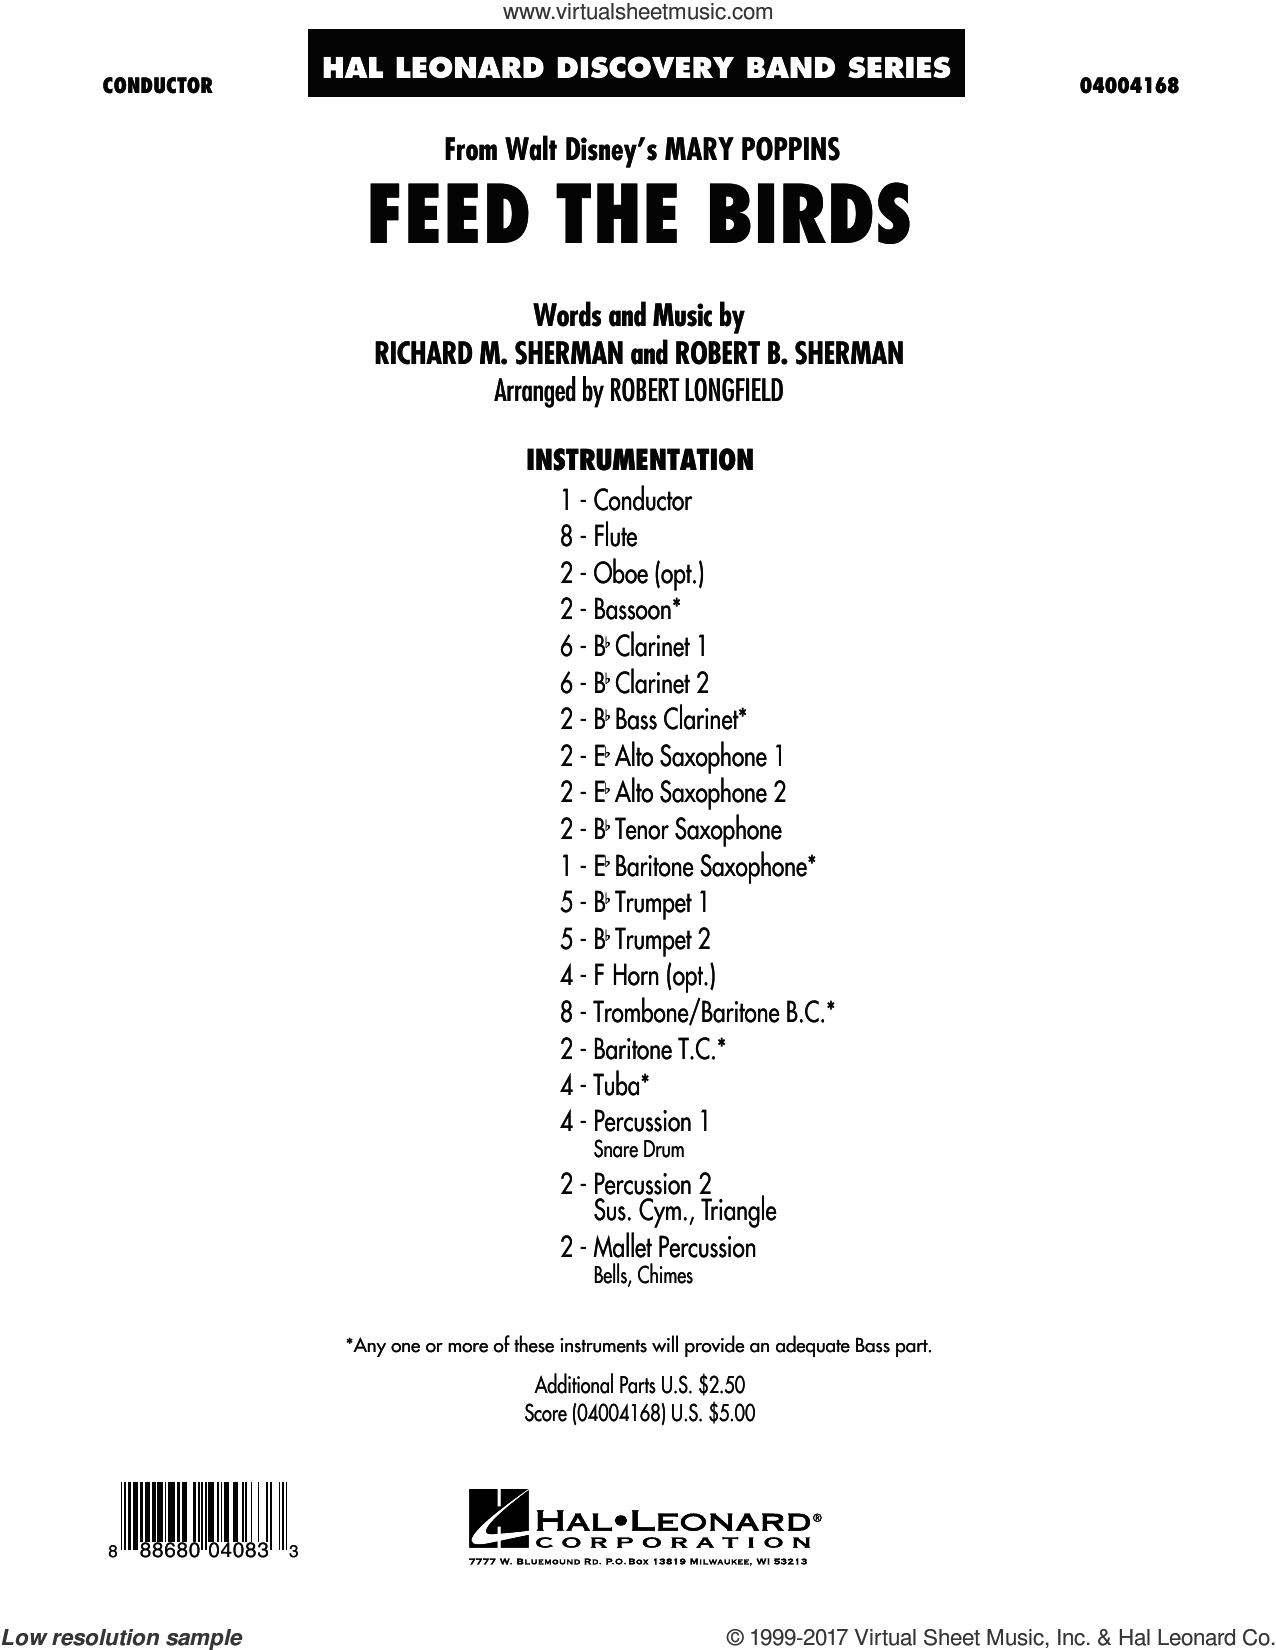 Feed the Birds (from Mary Poppins) (COMPLETE) sheet music for concert band by Robert Longfield, Richard M. Sherman and Robert B. Sherman, intermediate skill level